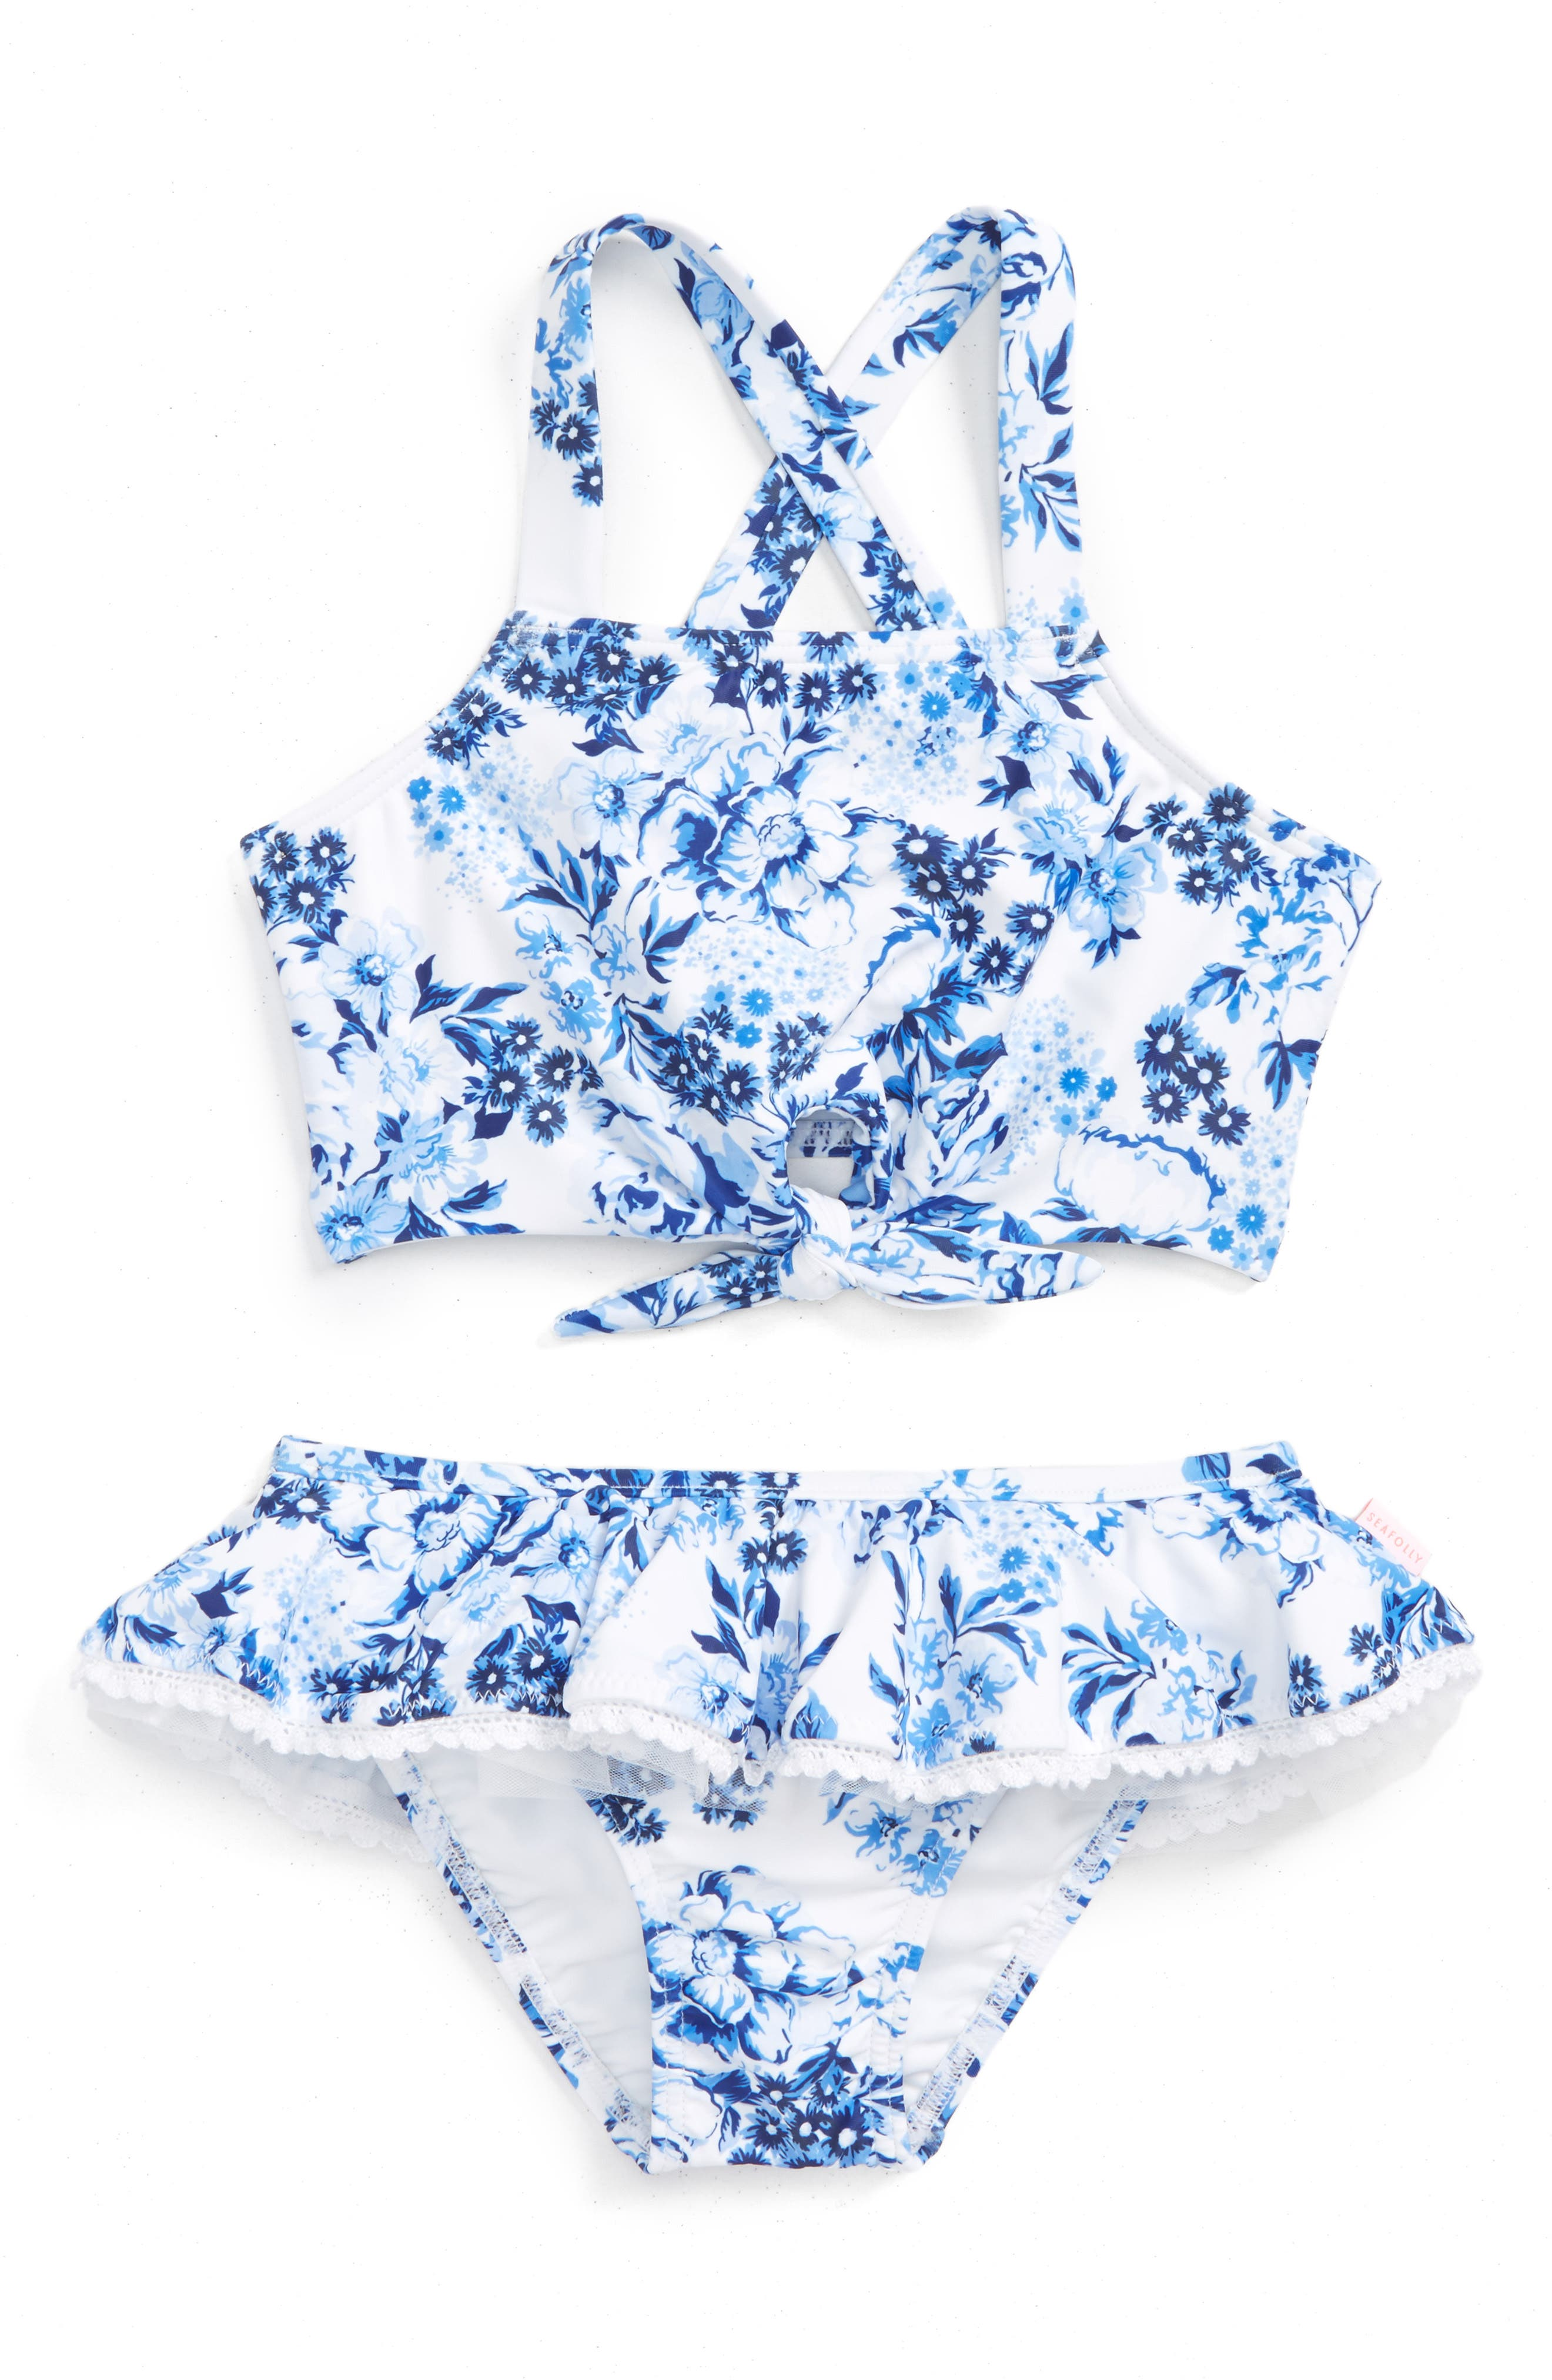 Alternate Image 1 Selected - Seafolly Forget Me Not Tankini Two-Piece Swimsuit (Toddler Girls & Little Girls)